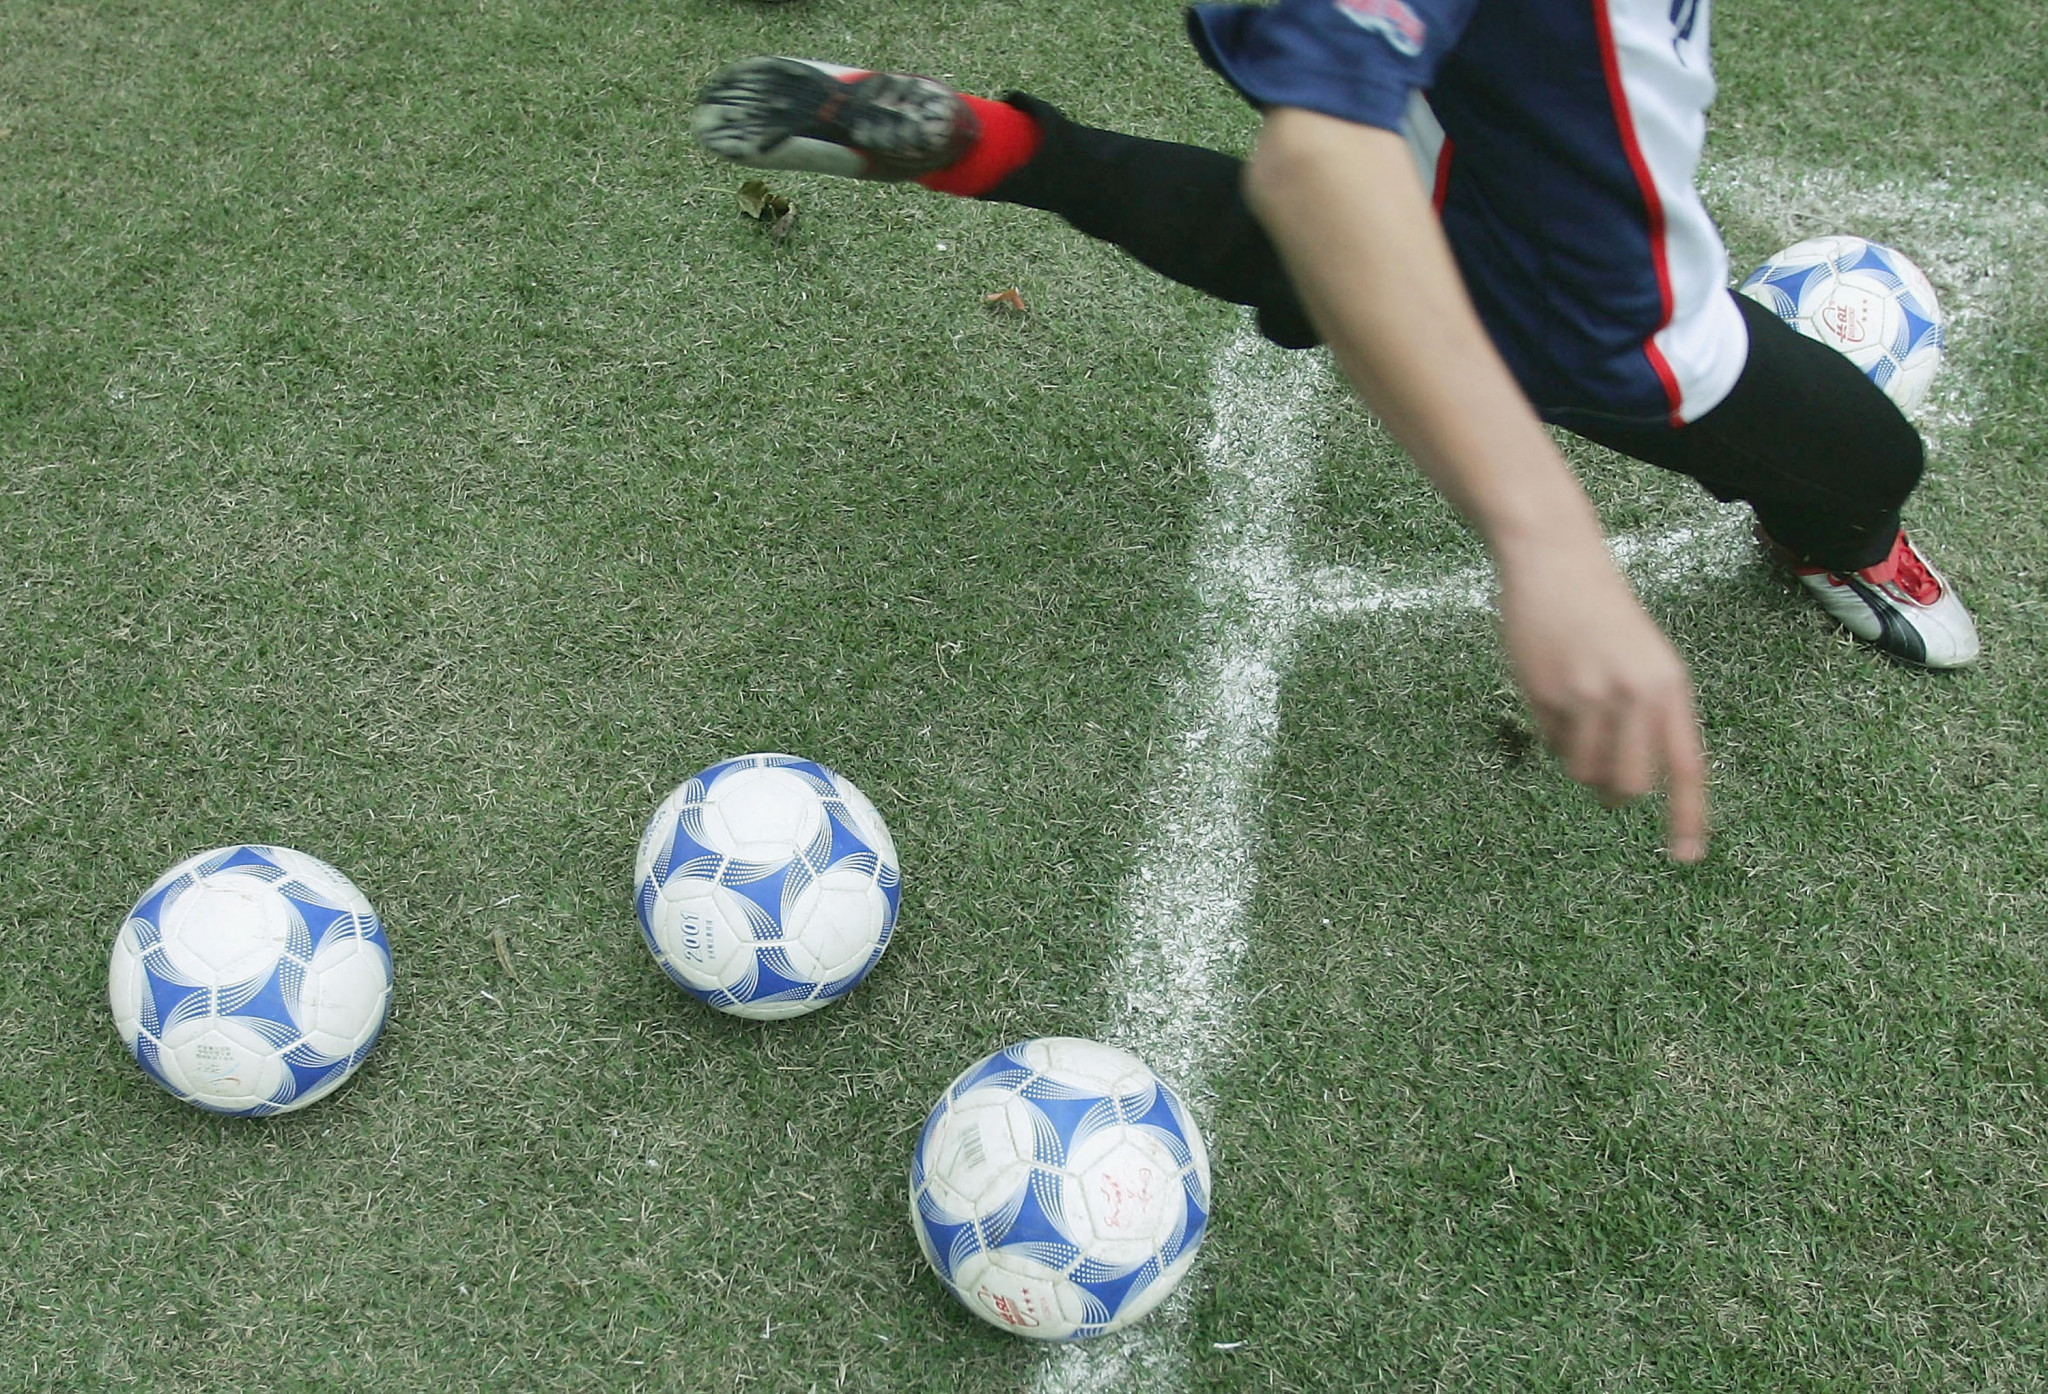 Special Olympics European Football Week 2021 taking place in 40 countries